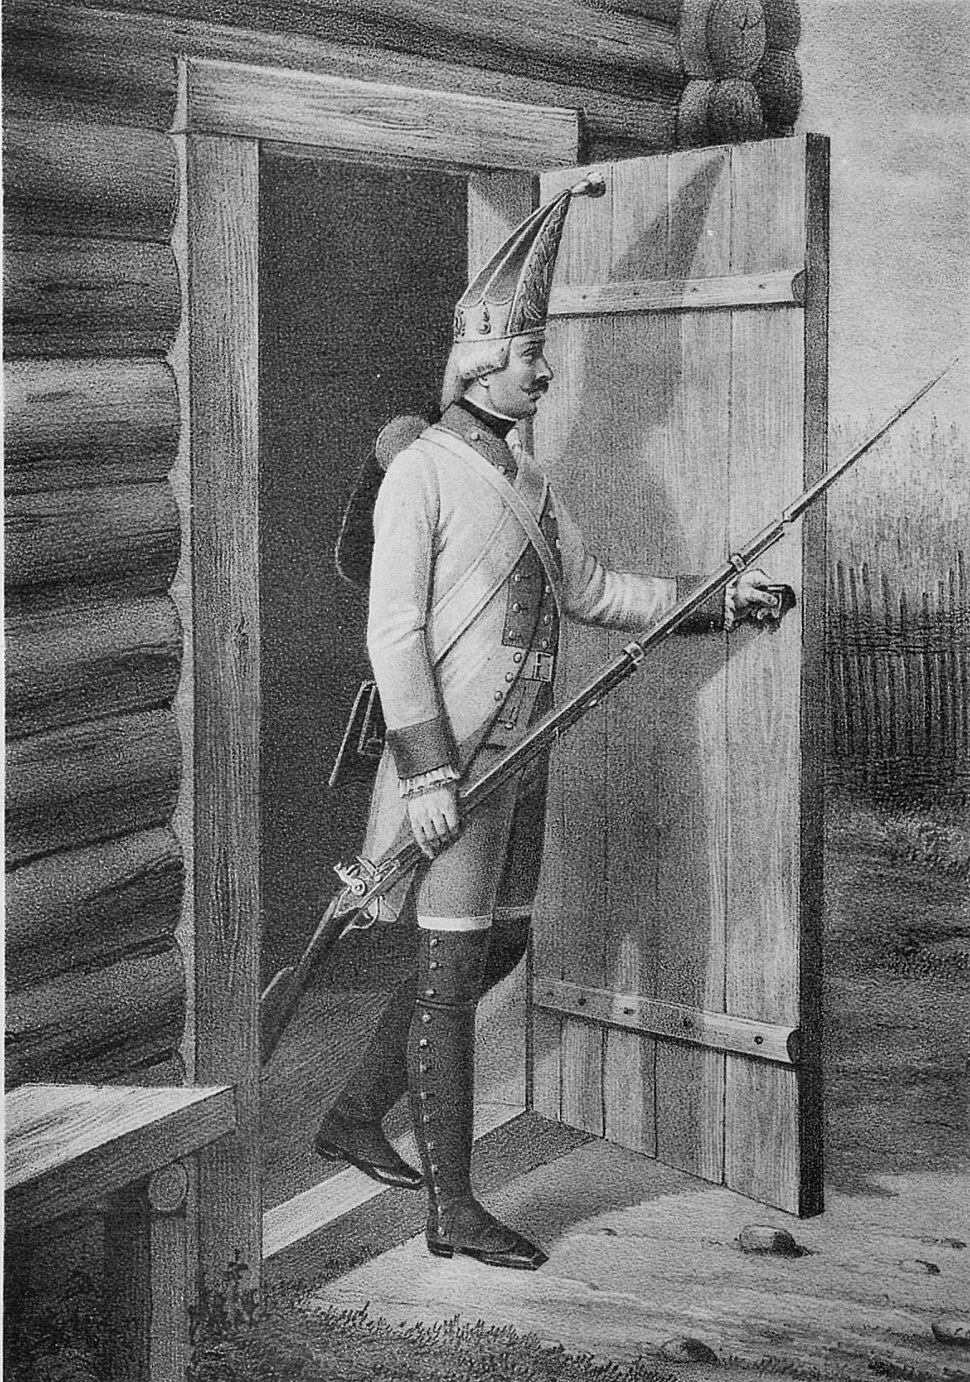 04 601 Book illustrations of Historical description of the clothes and weapons of Russian troops